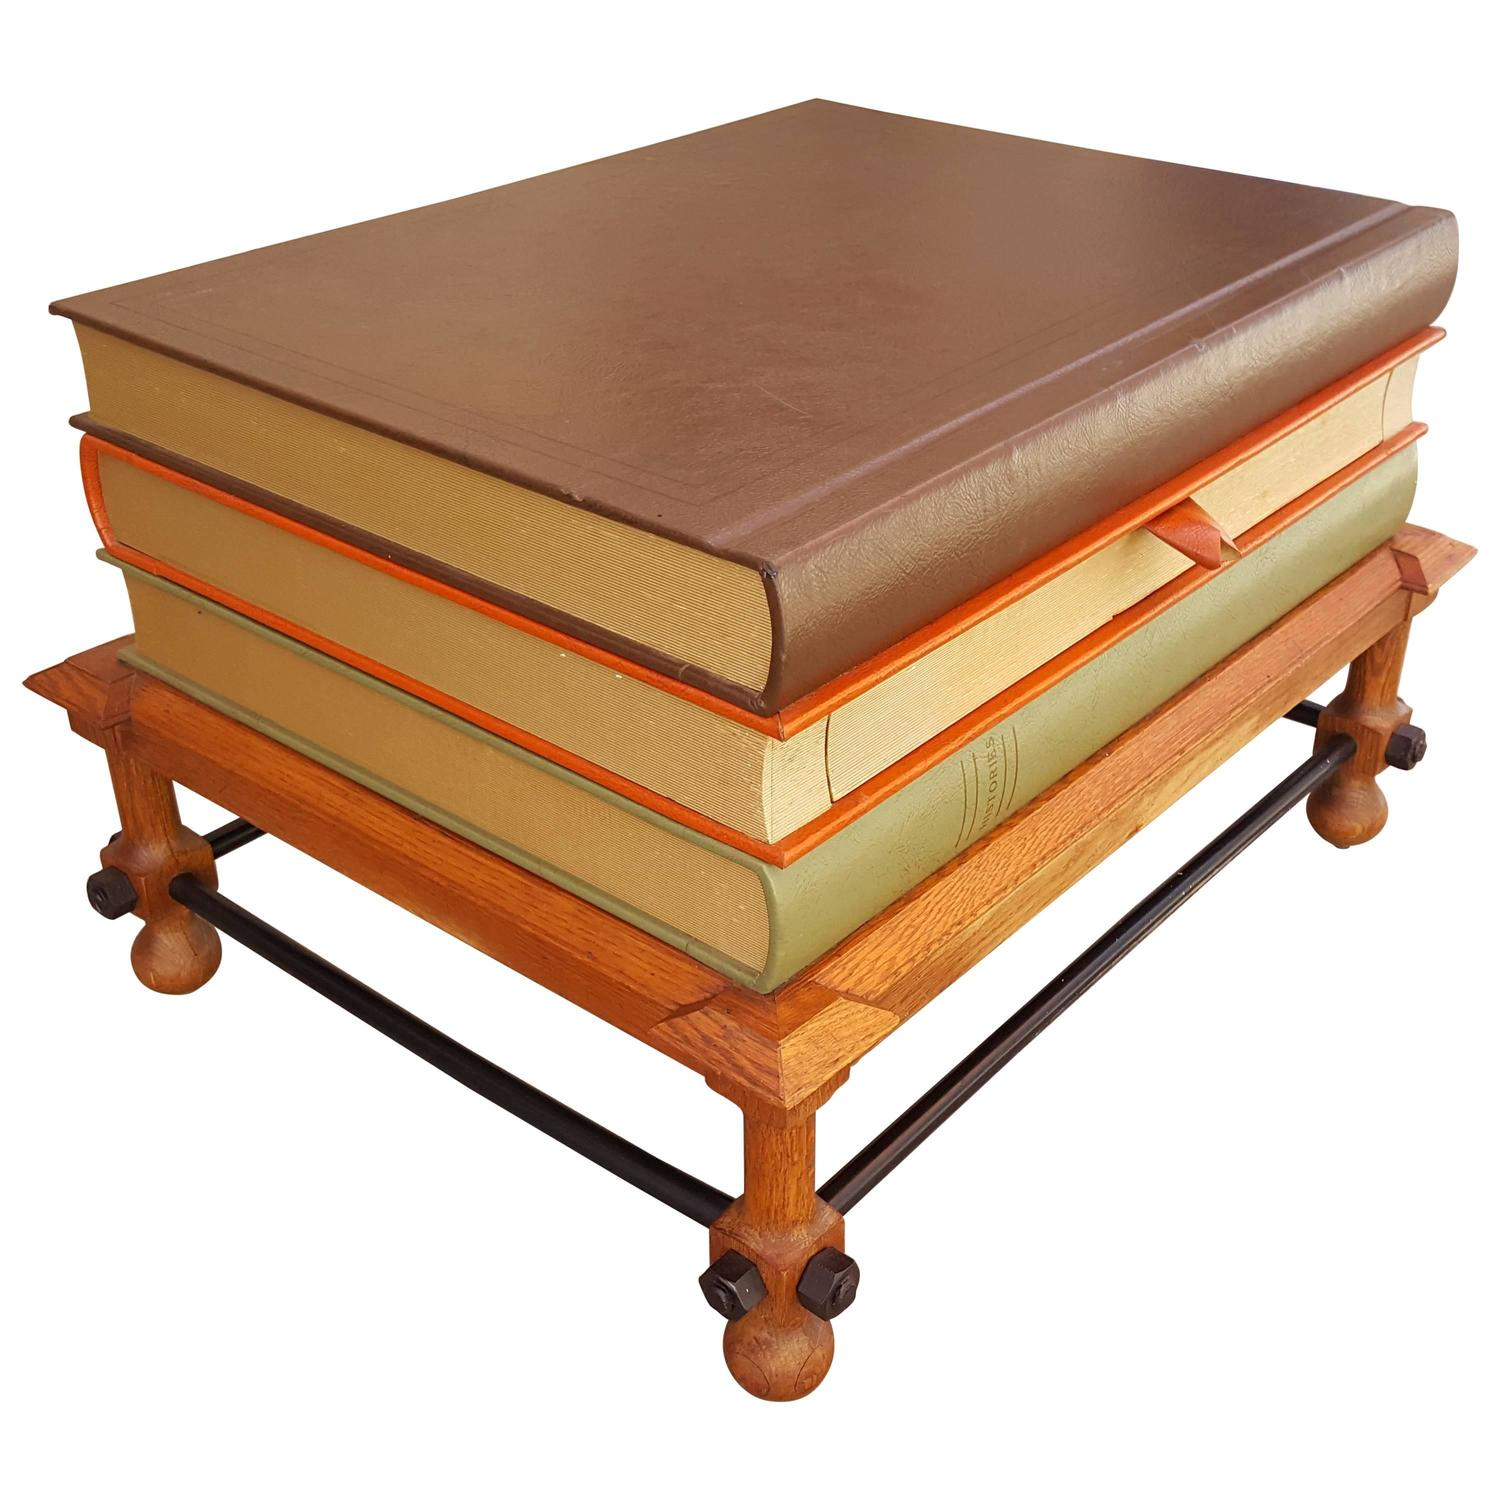 John Dickinson Stacked Books End Table For Sale at 1stdibs